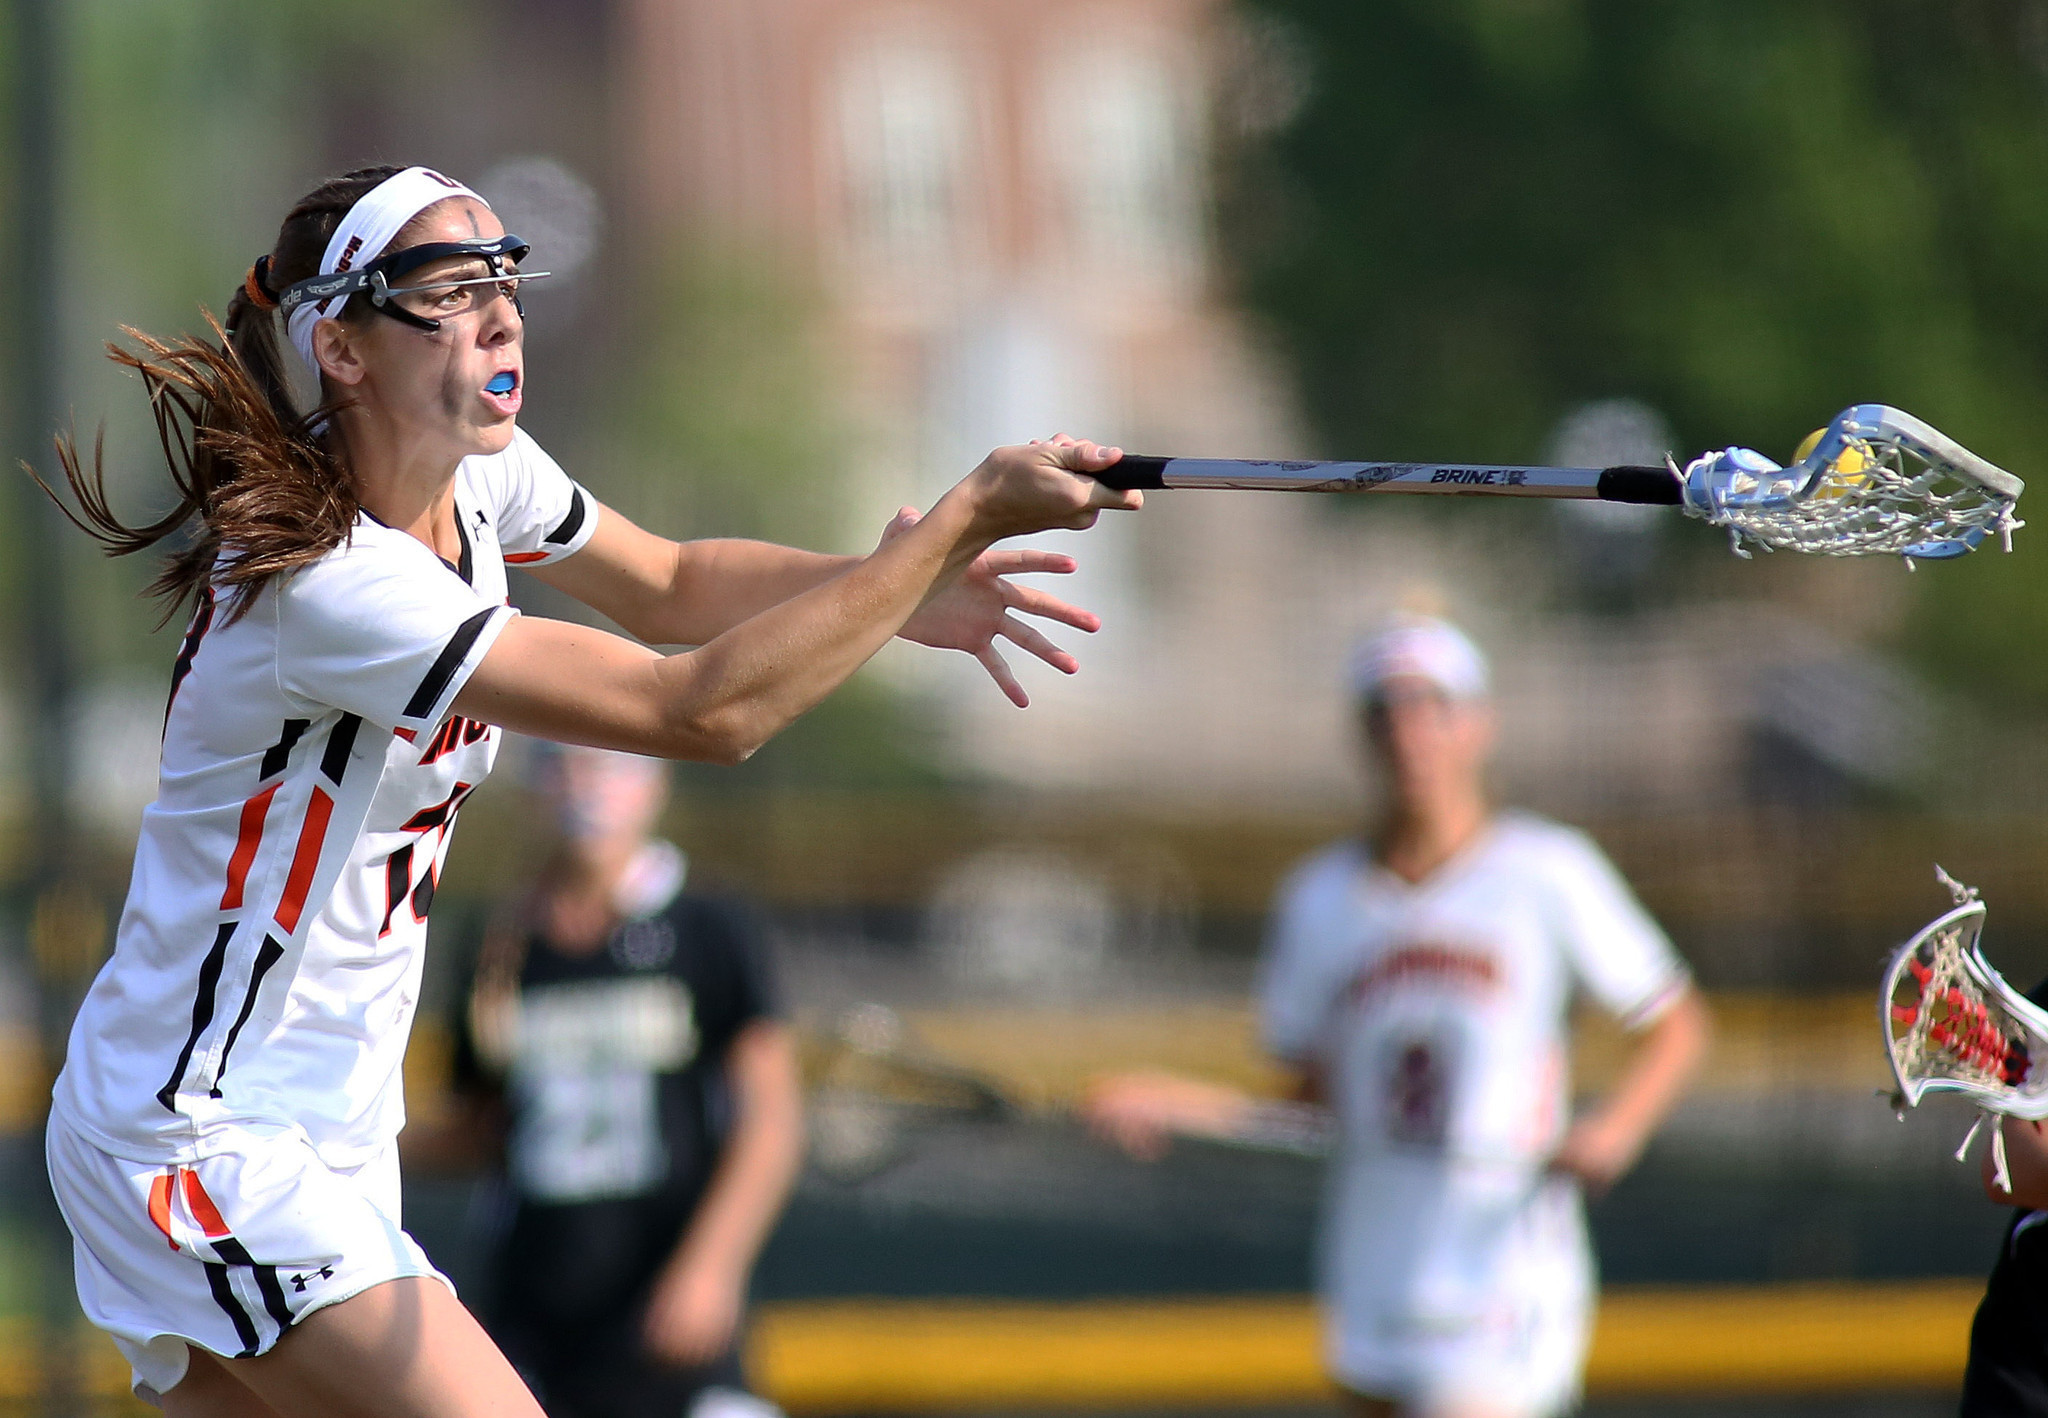 High Point Lacrosse >> Maddie Jenner strong on draws as No. 1 McDonogh beats No ...